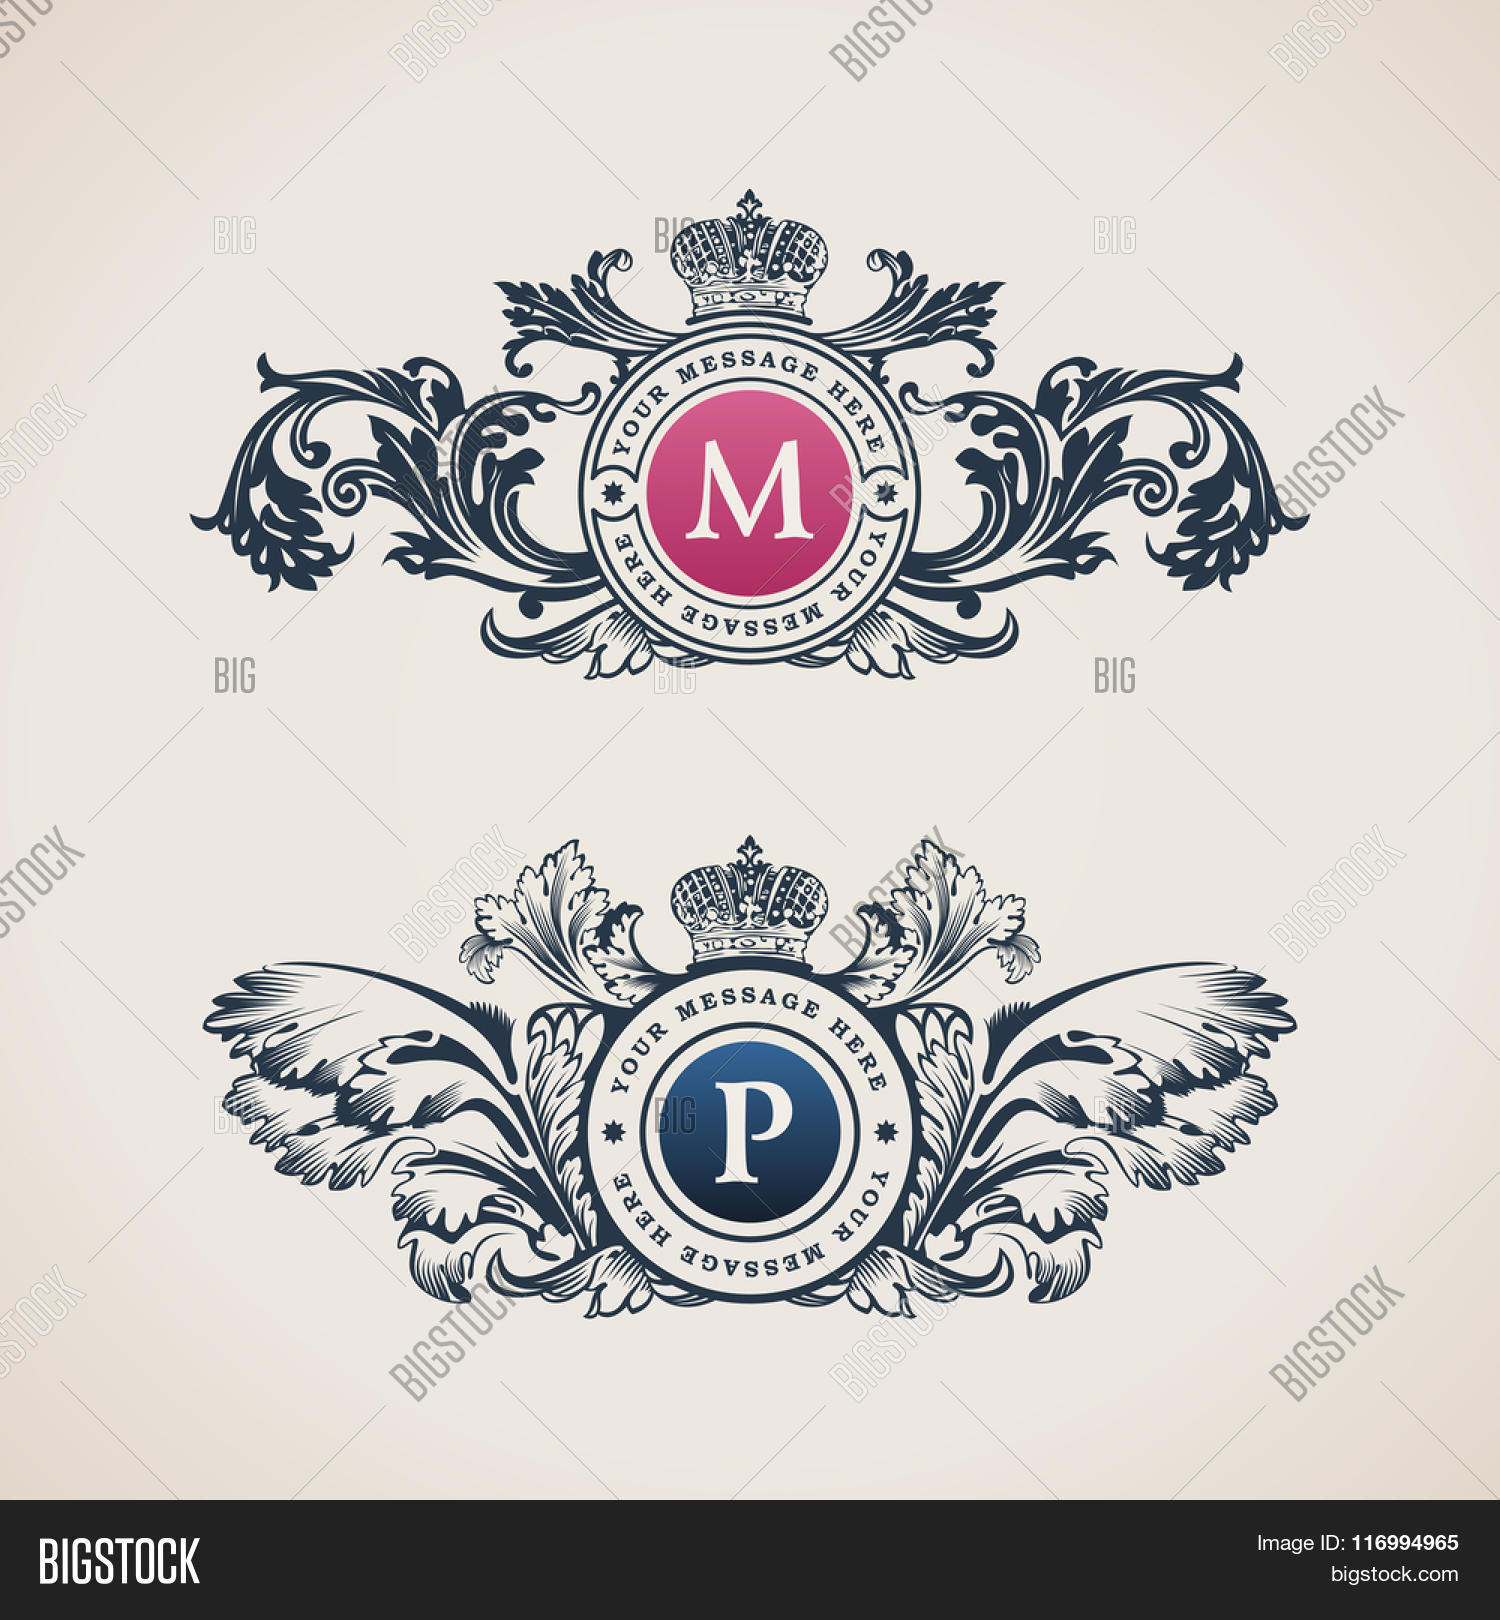 Vintage Decorative Vector & Photo (Free Trial) | Bigstock